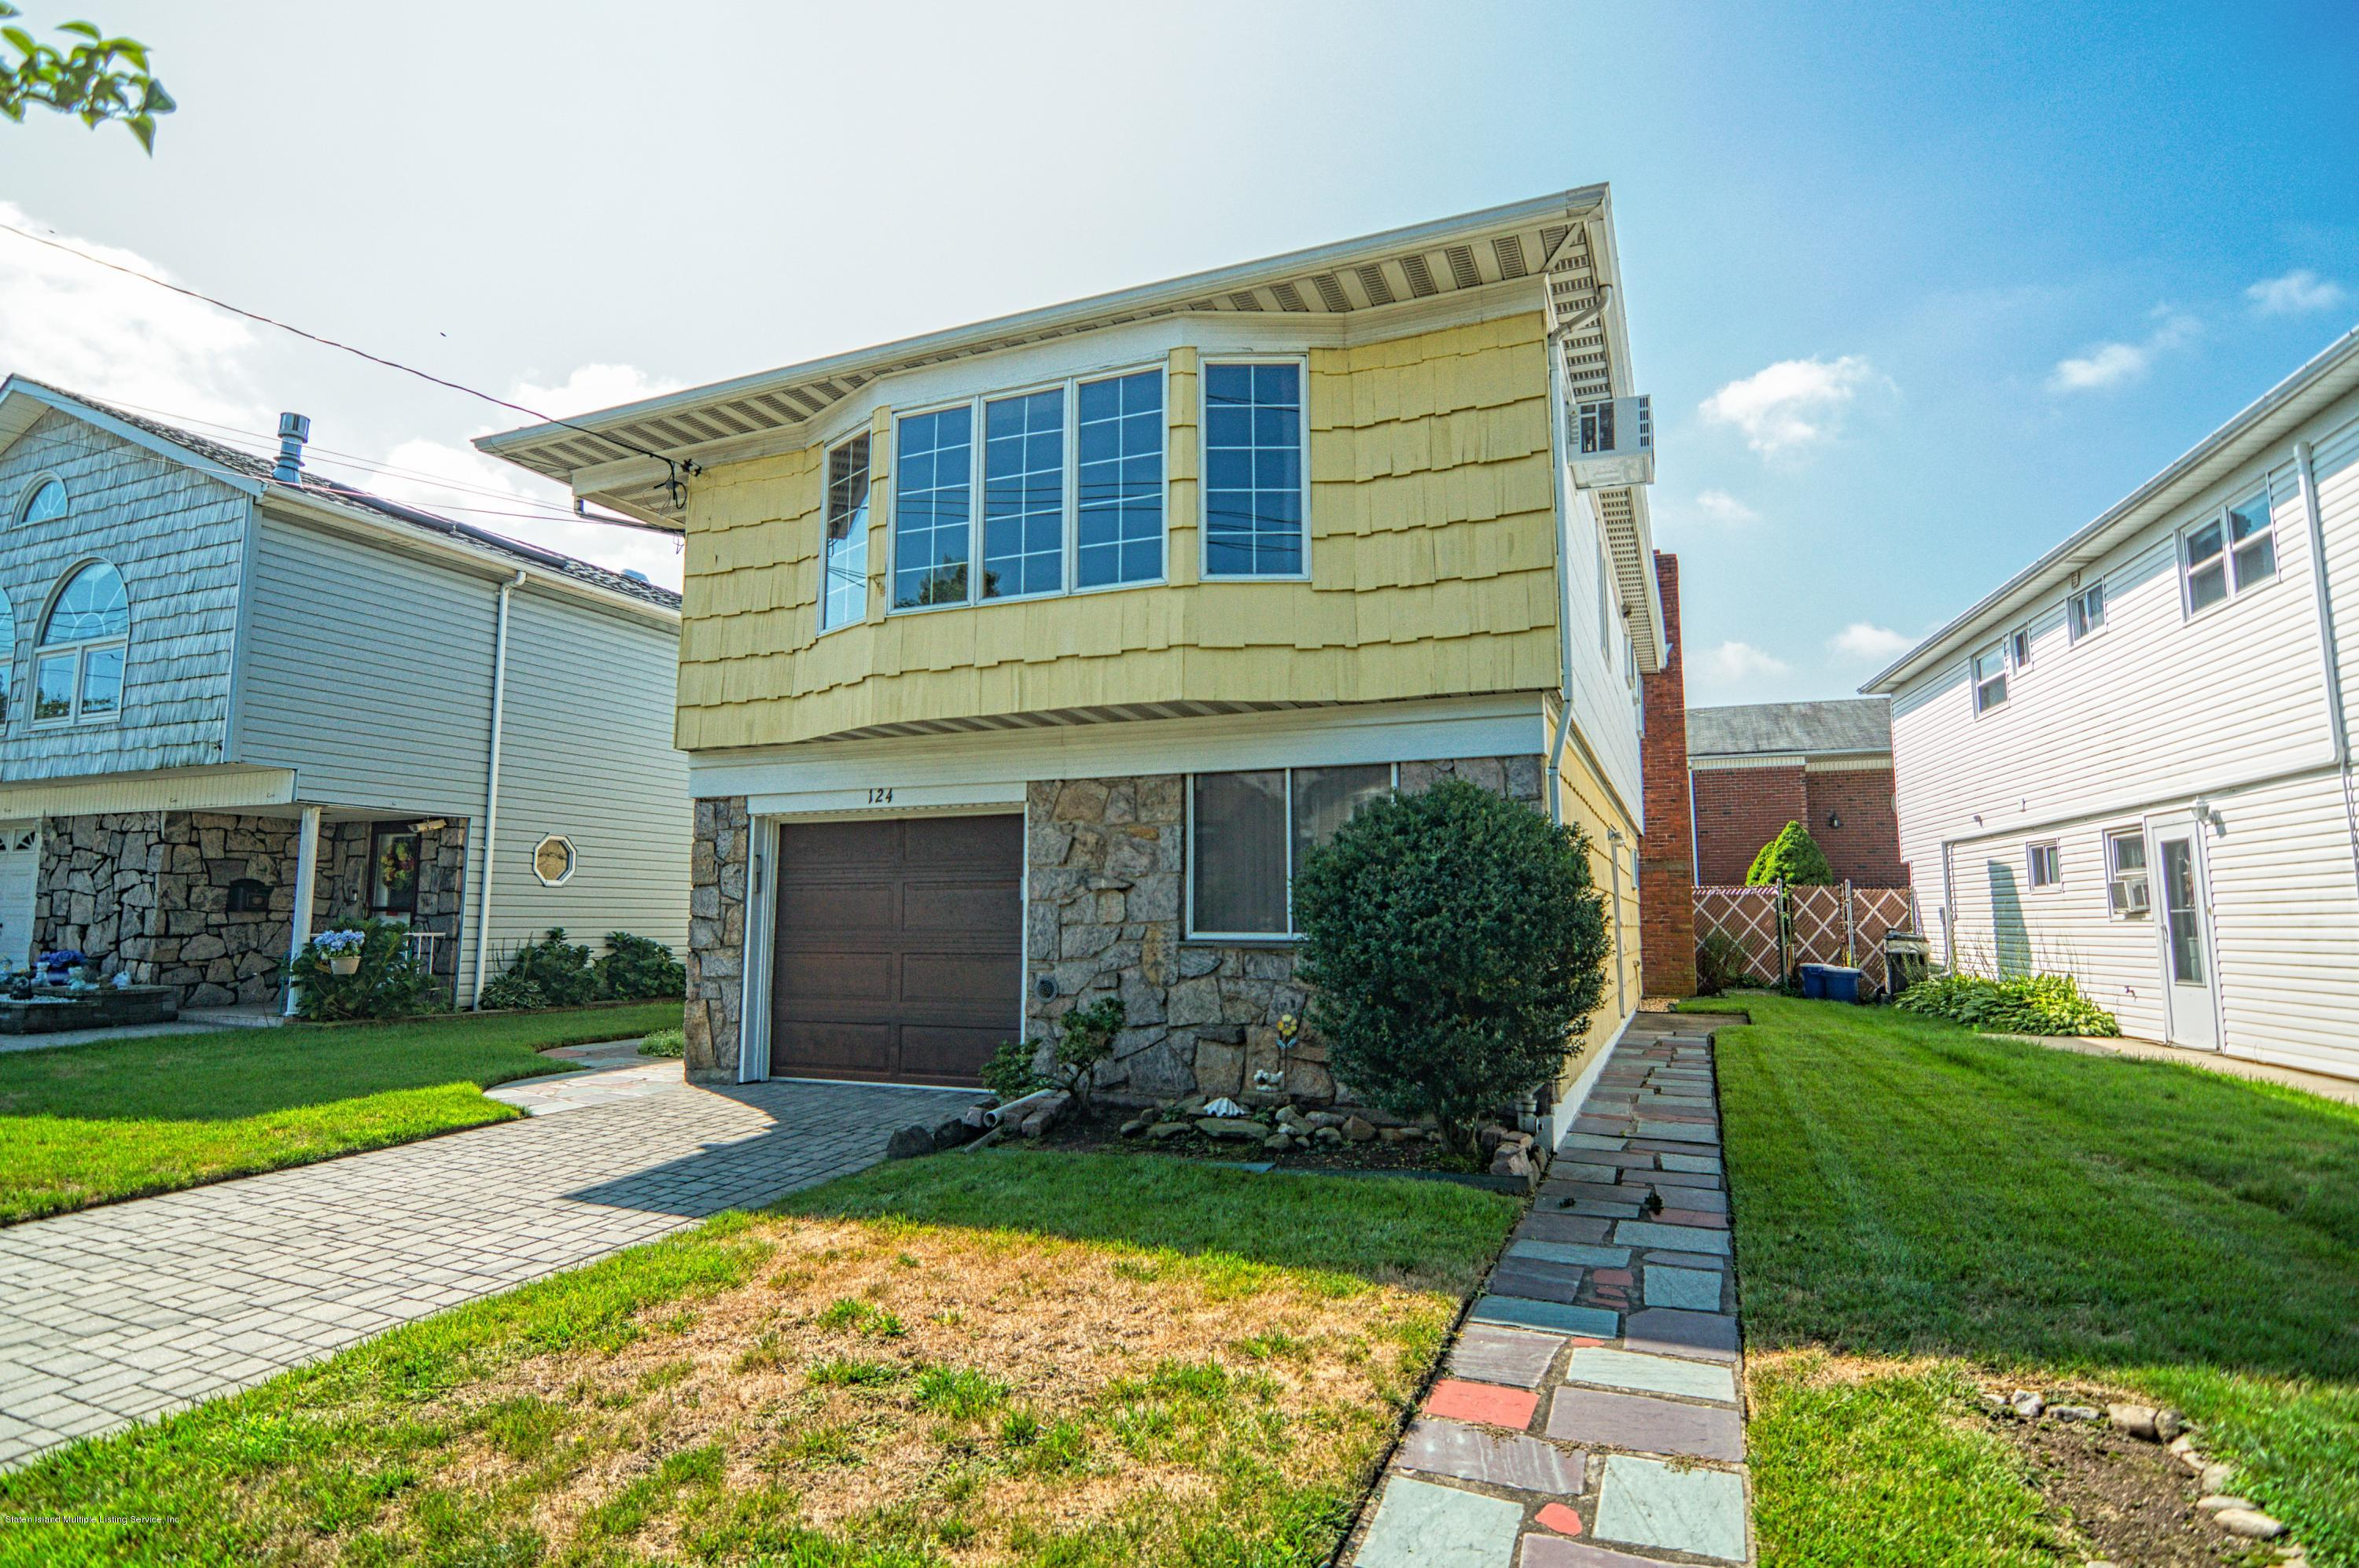 Single Family - Detached 124 Queen Street  Staten Island, NY 10314, MLS-1131413-3